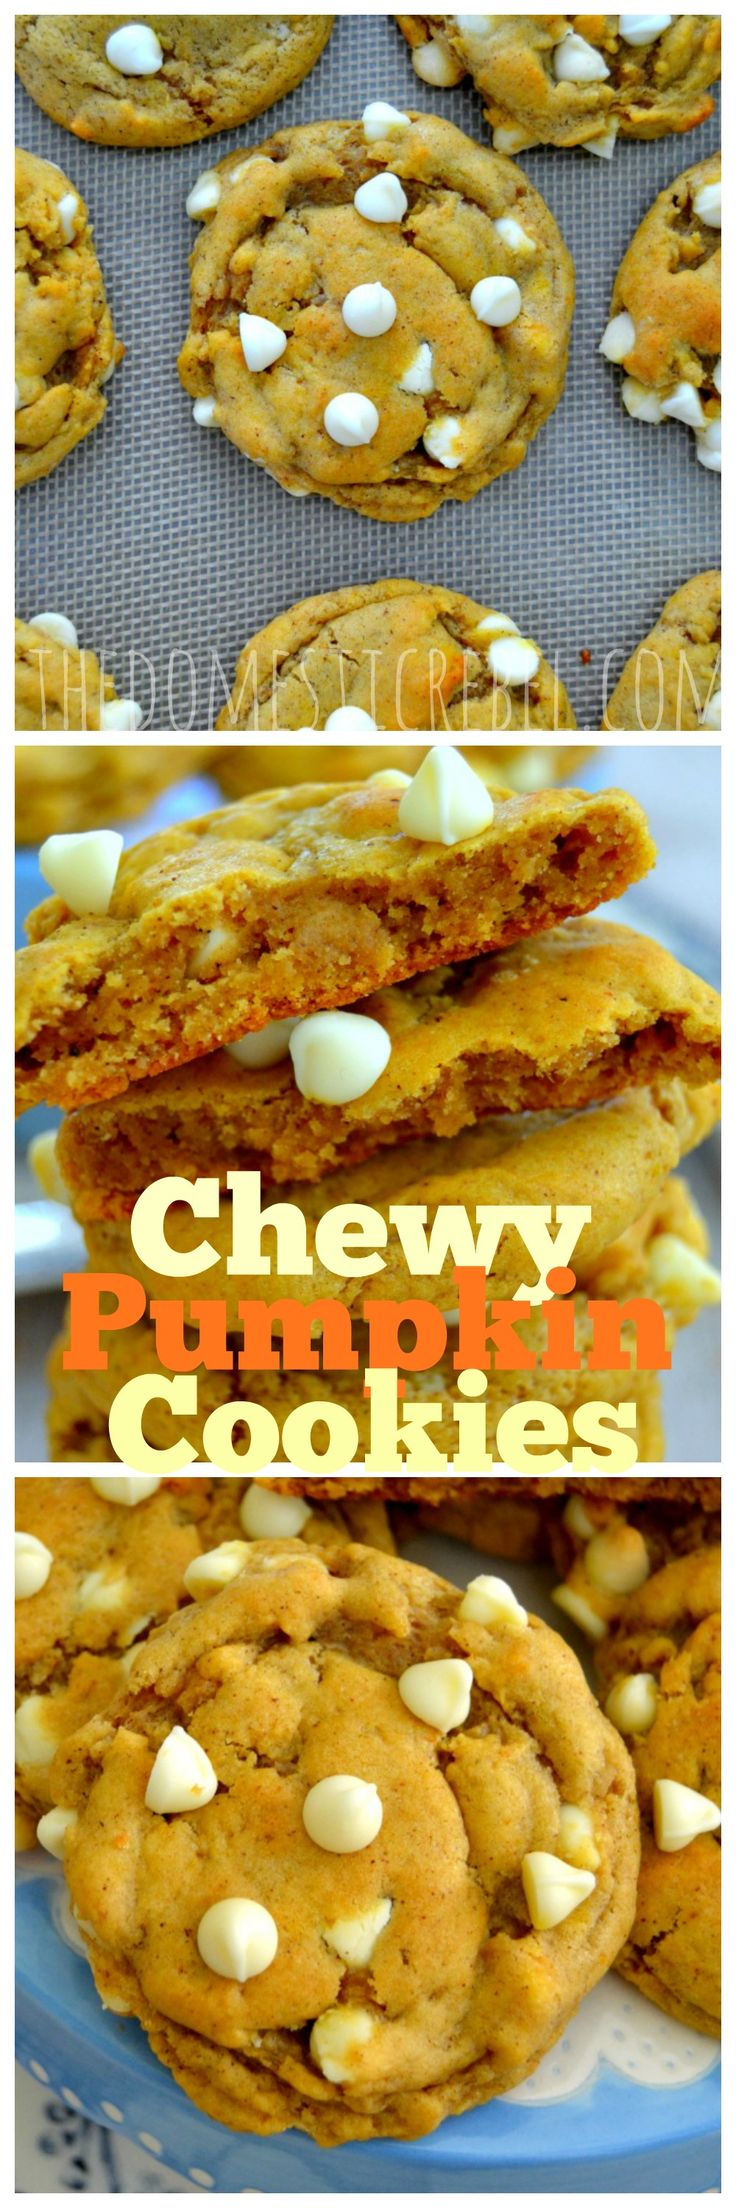 The BEST Chewy Pumpkin Chip Cookies! Soft and chewy with slightly crispy edges that are packed with real pumpkin and gooey white morsels. The perfect cookie!